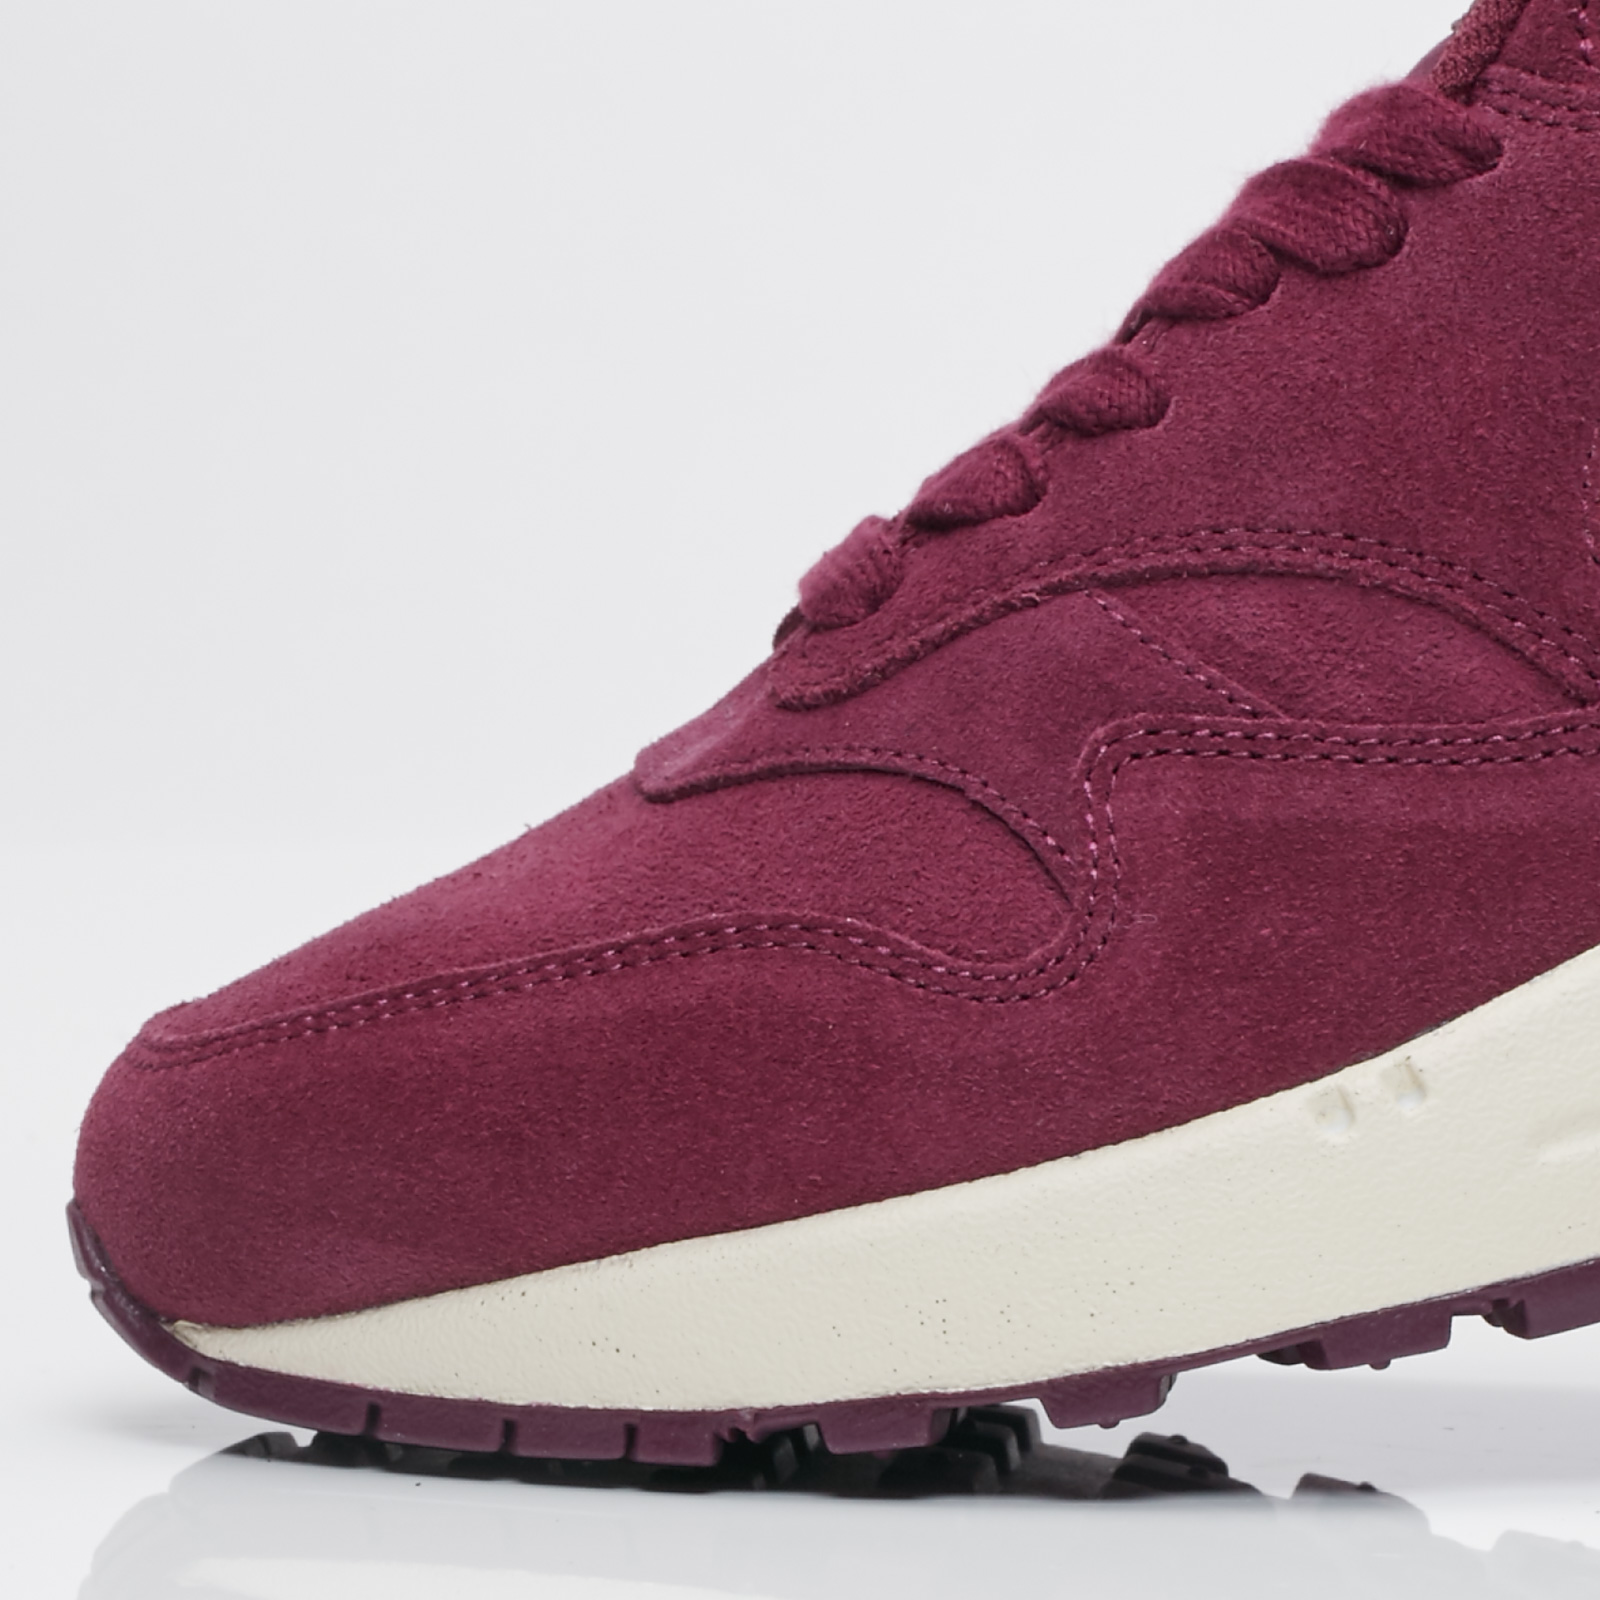 Nike Wmns Air Max 1 Premium SC - Aa0512-600 - Sneakersnstuff ... b492bbbfb1